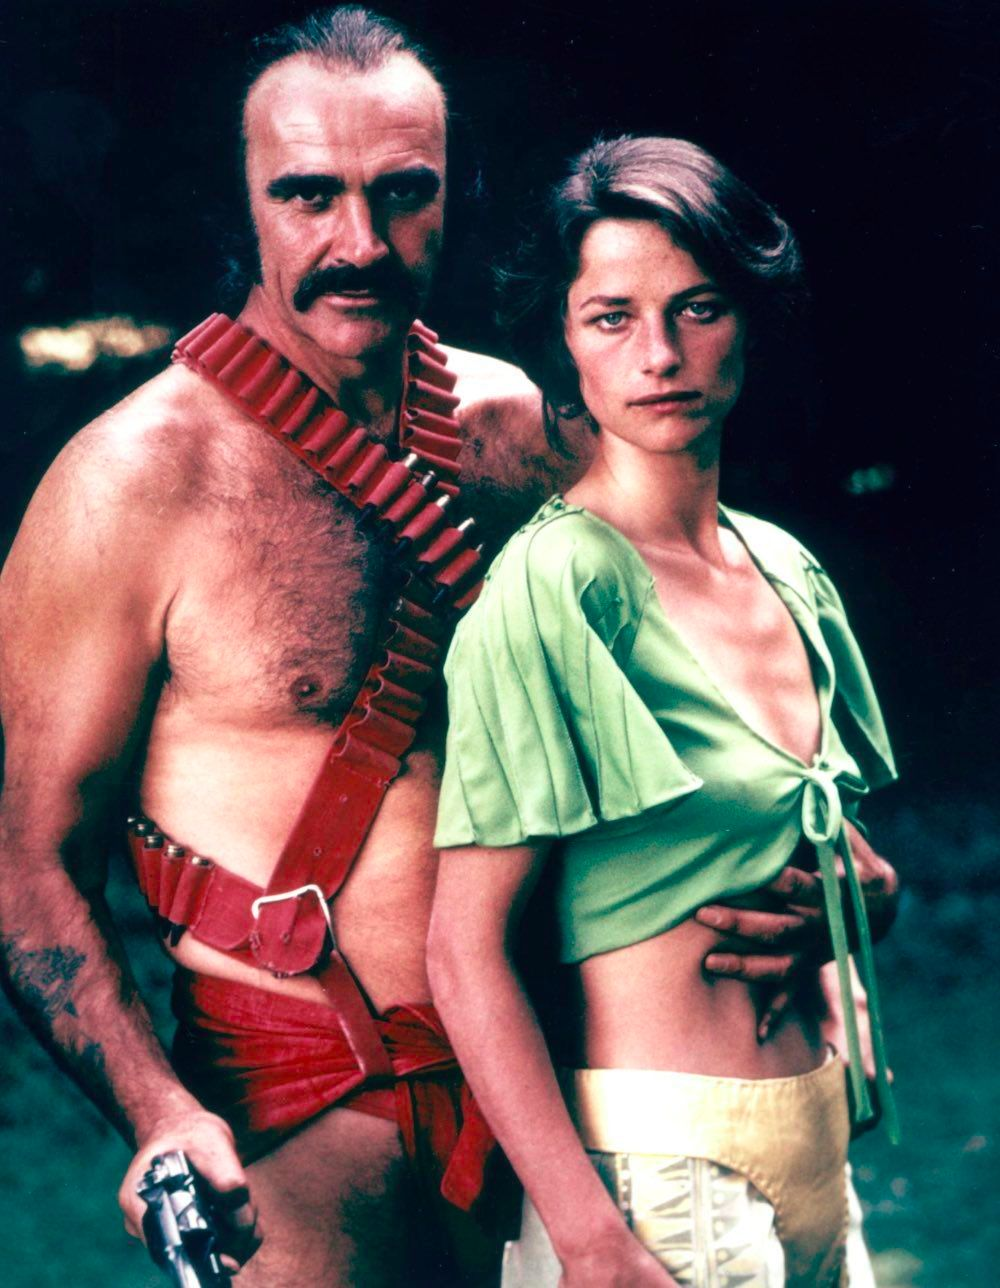 15 Photos Of Sean Connery Rocked A Scarlet Mankini In 1974